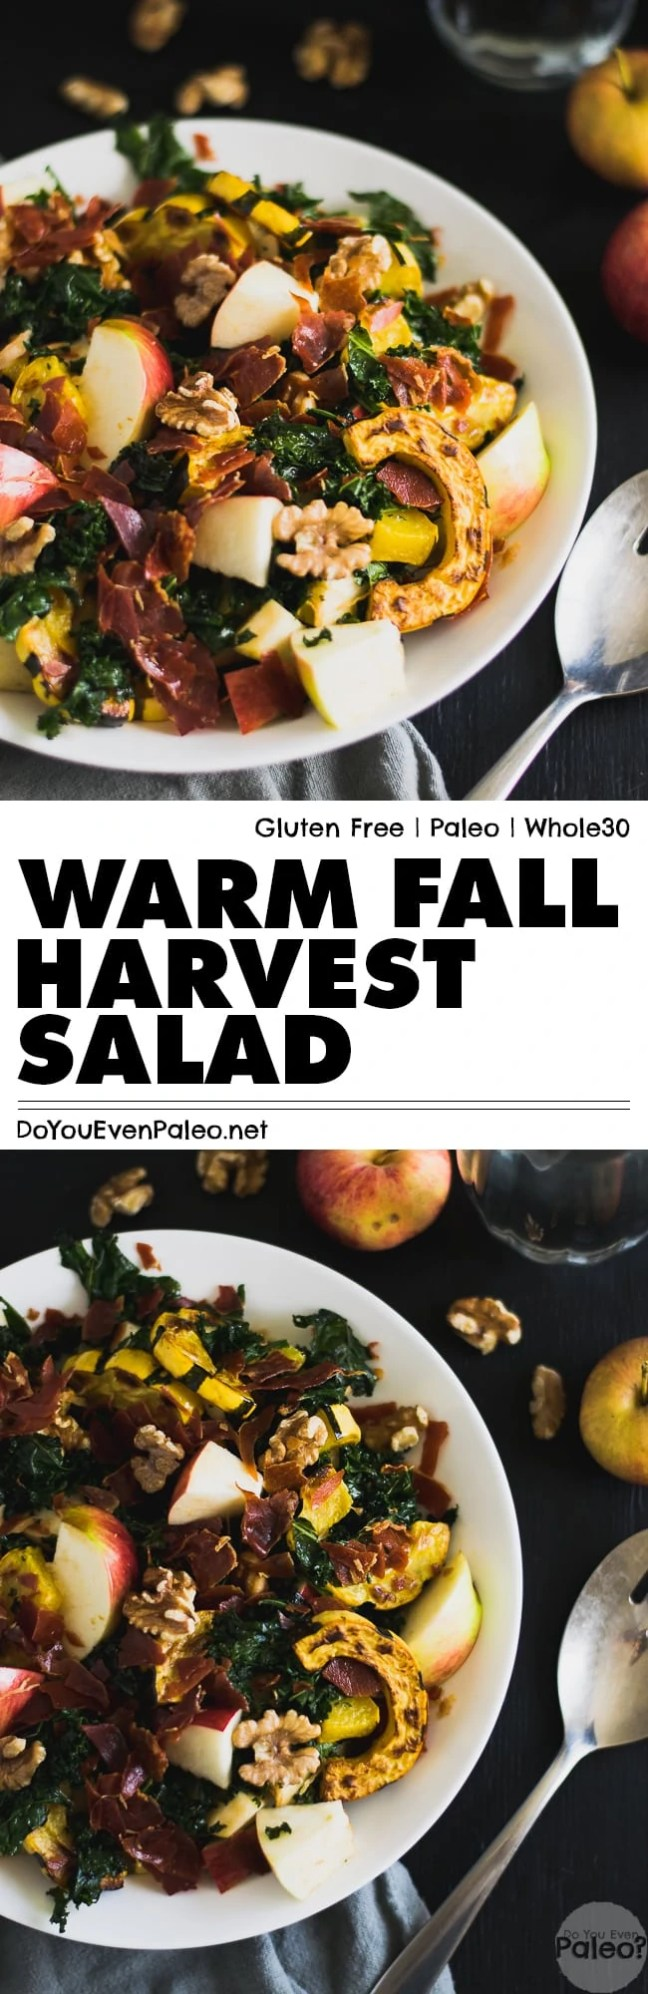 A warm fall harvest salad packed with kale, delicata squash, apples, walnuts, and crispy prosciutto—essentially a blend of sweet and salty autumn flavor. Paleo, gluten free, and Whole30!   DoYouEvenPaleo.net